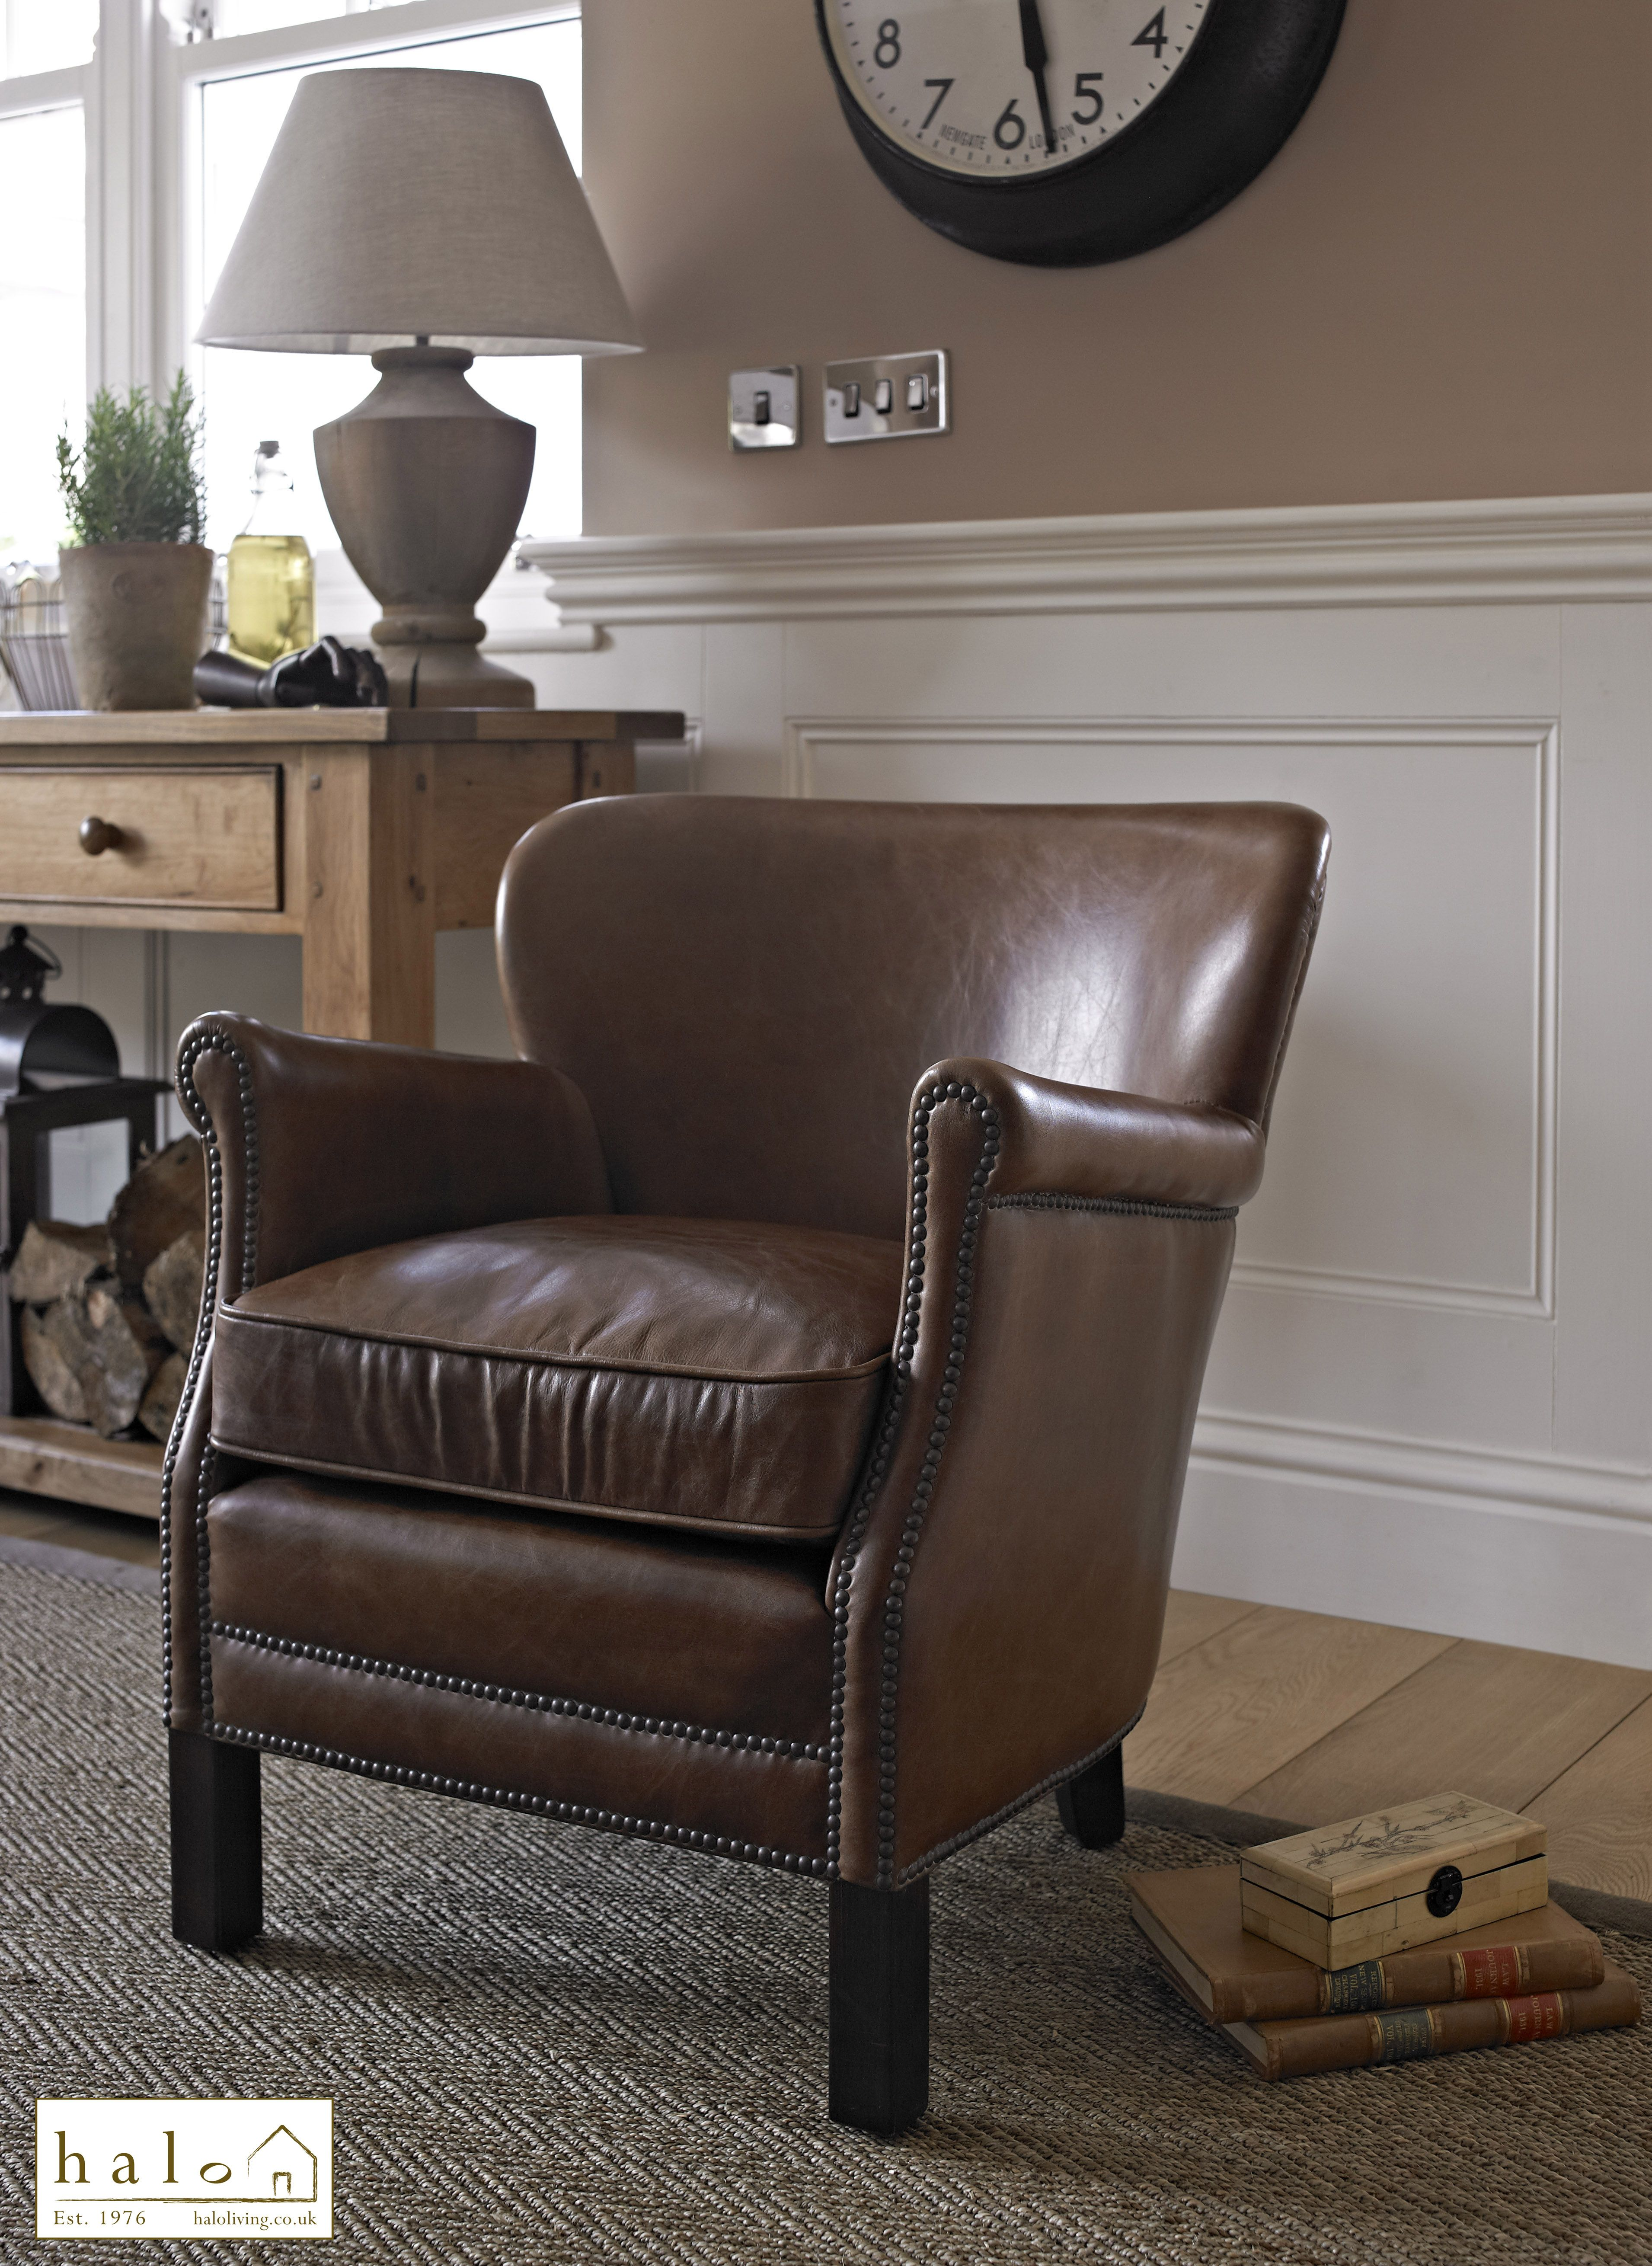 Professor Chair Halo Living In 2019 Pinterest Armchair Furniture And Chair